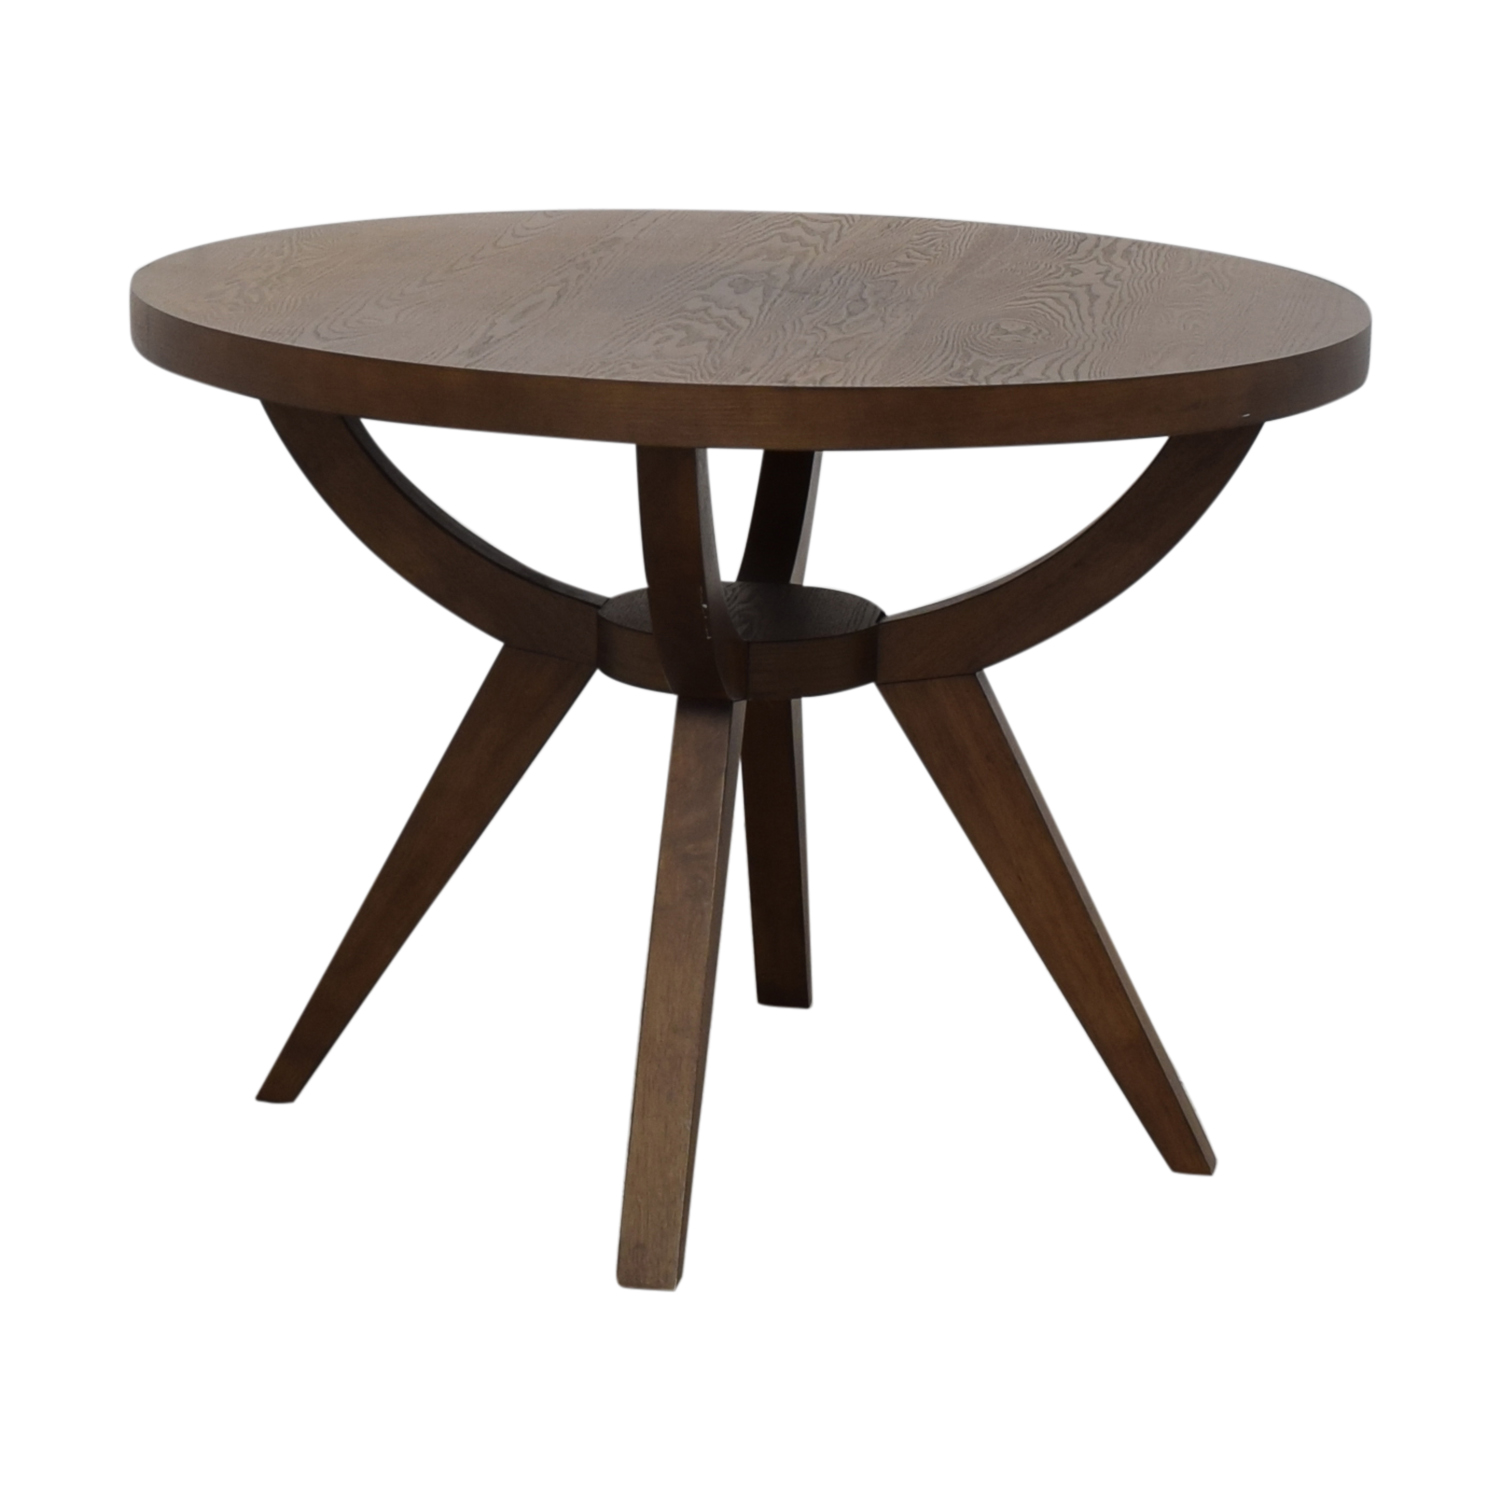 West Elm West Elm Arc Base Pedestal Dining Table nj